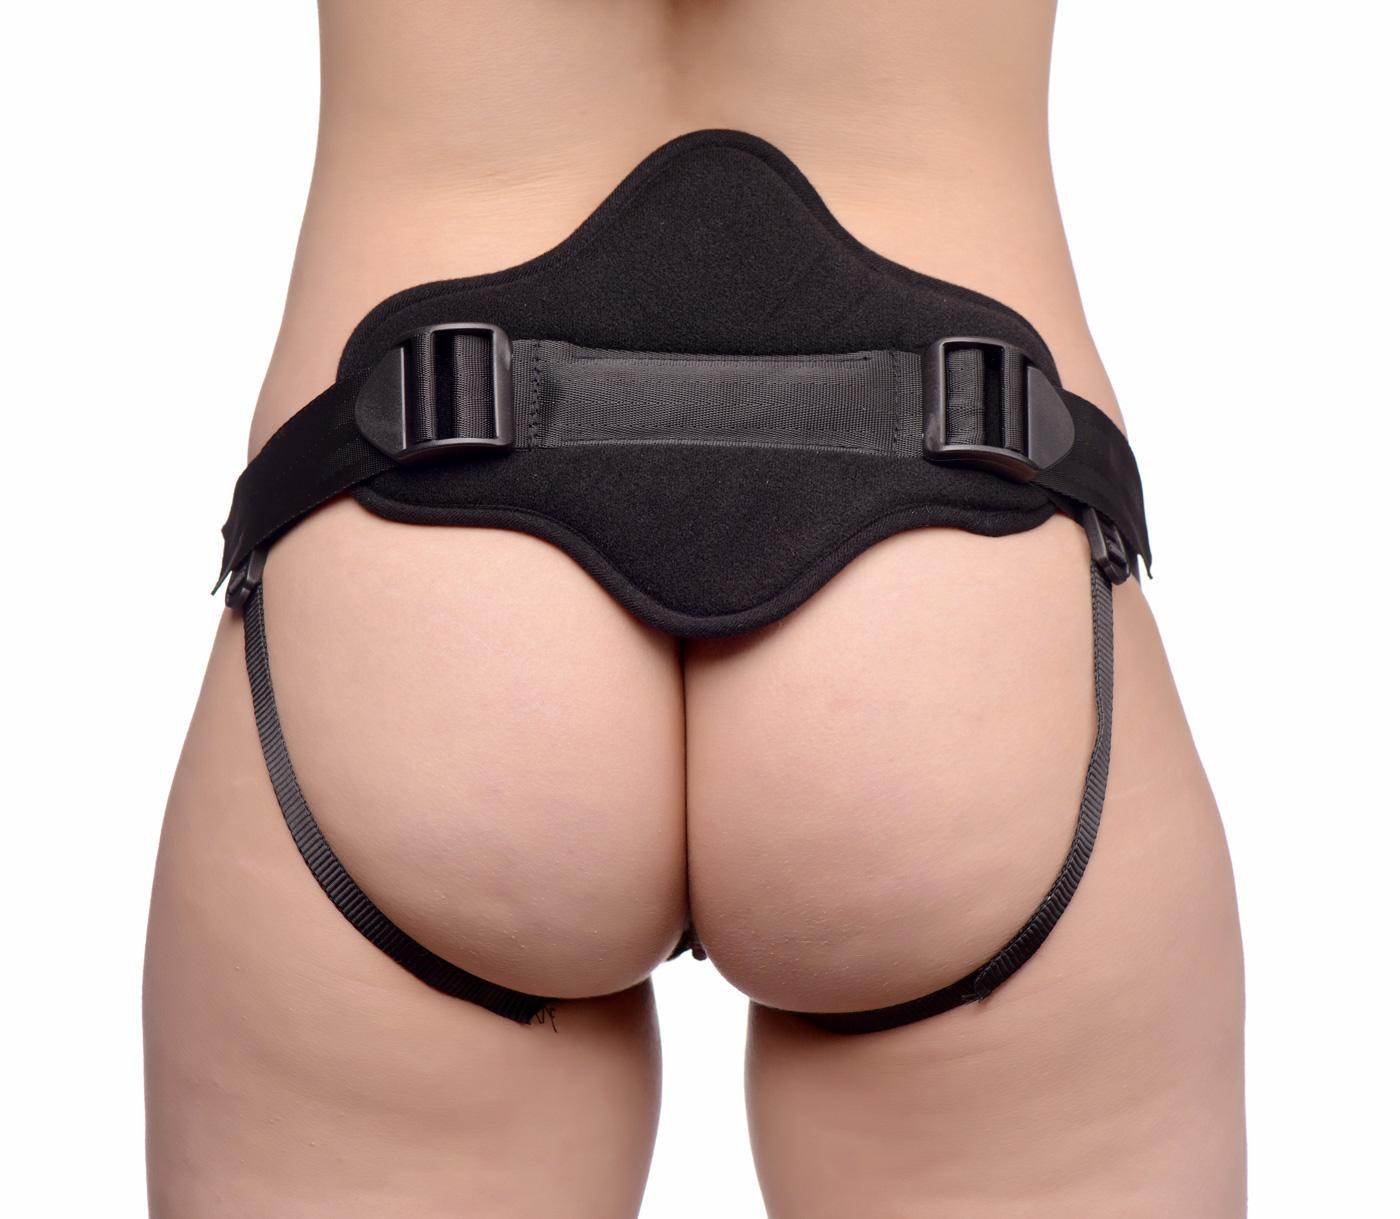 Peg Me Universal Padded Strap On Harness with Back Support